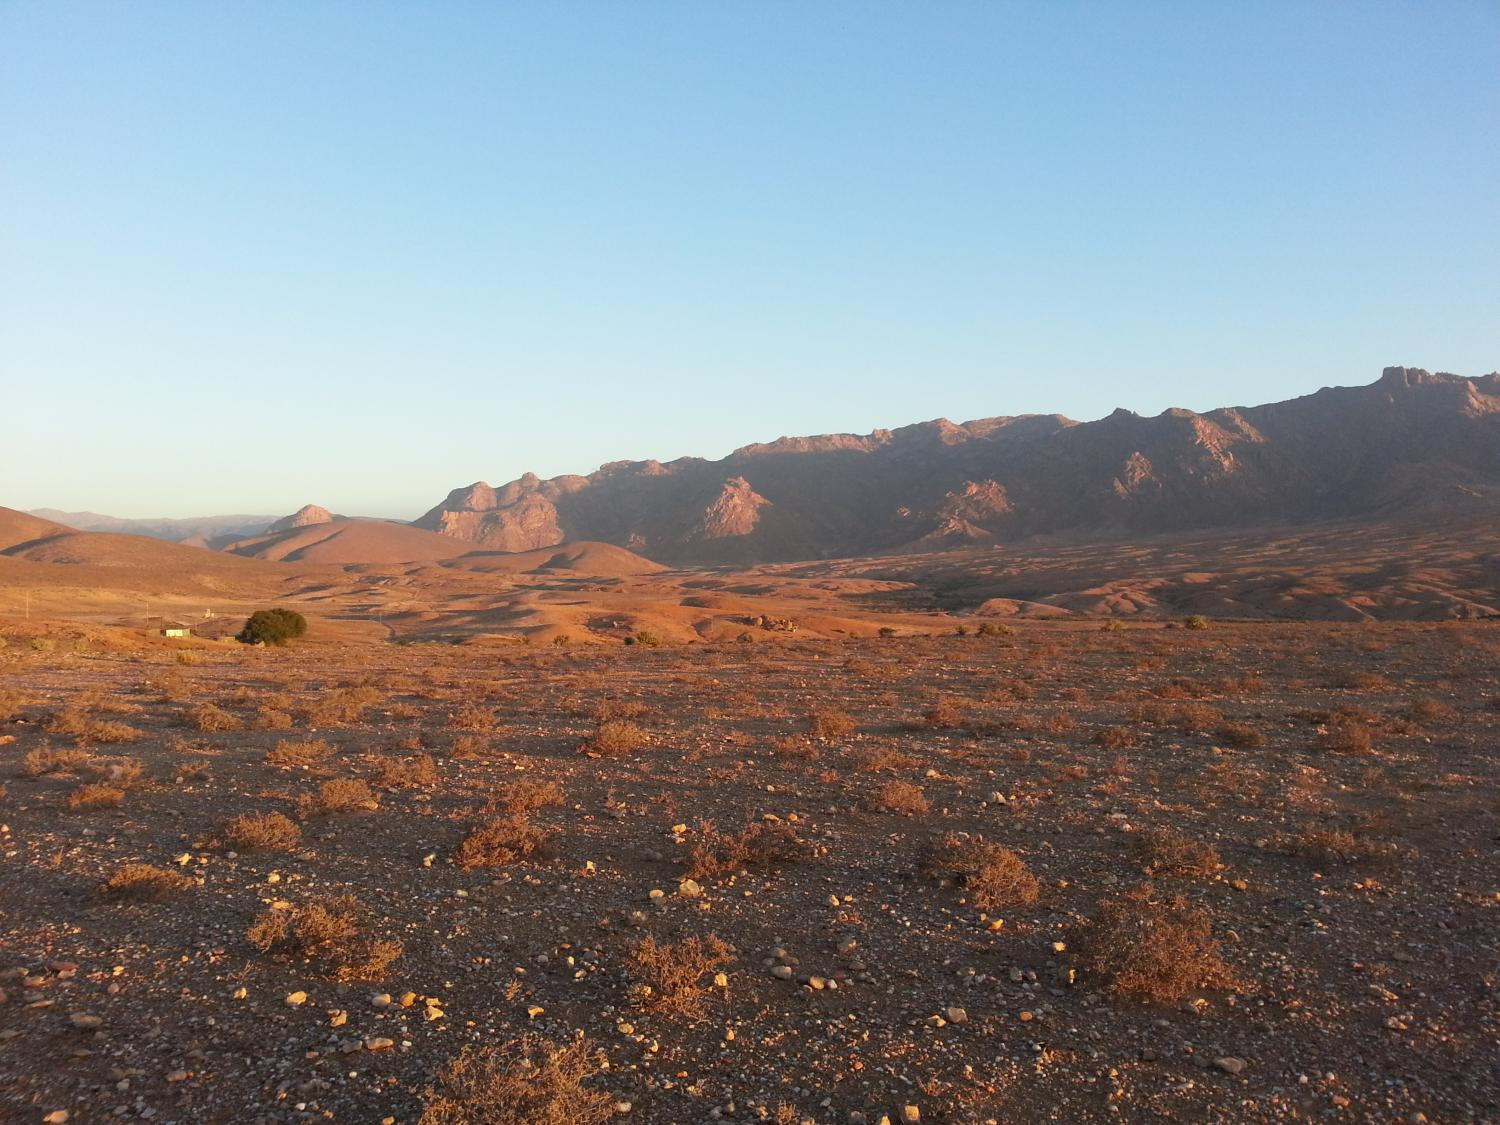 a view of arid mountains at dusk in the richtersveld community conservancy south africa credit brenna henn - Coloration Et Henn